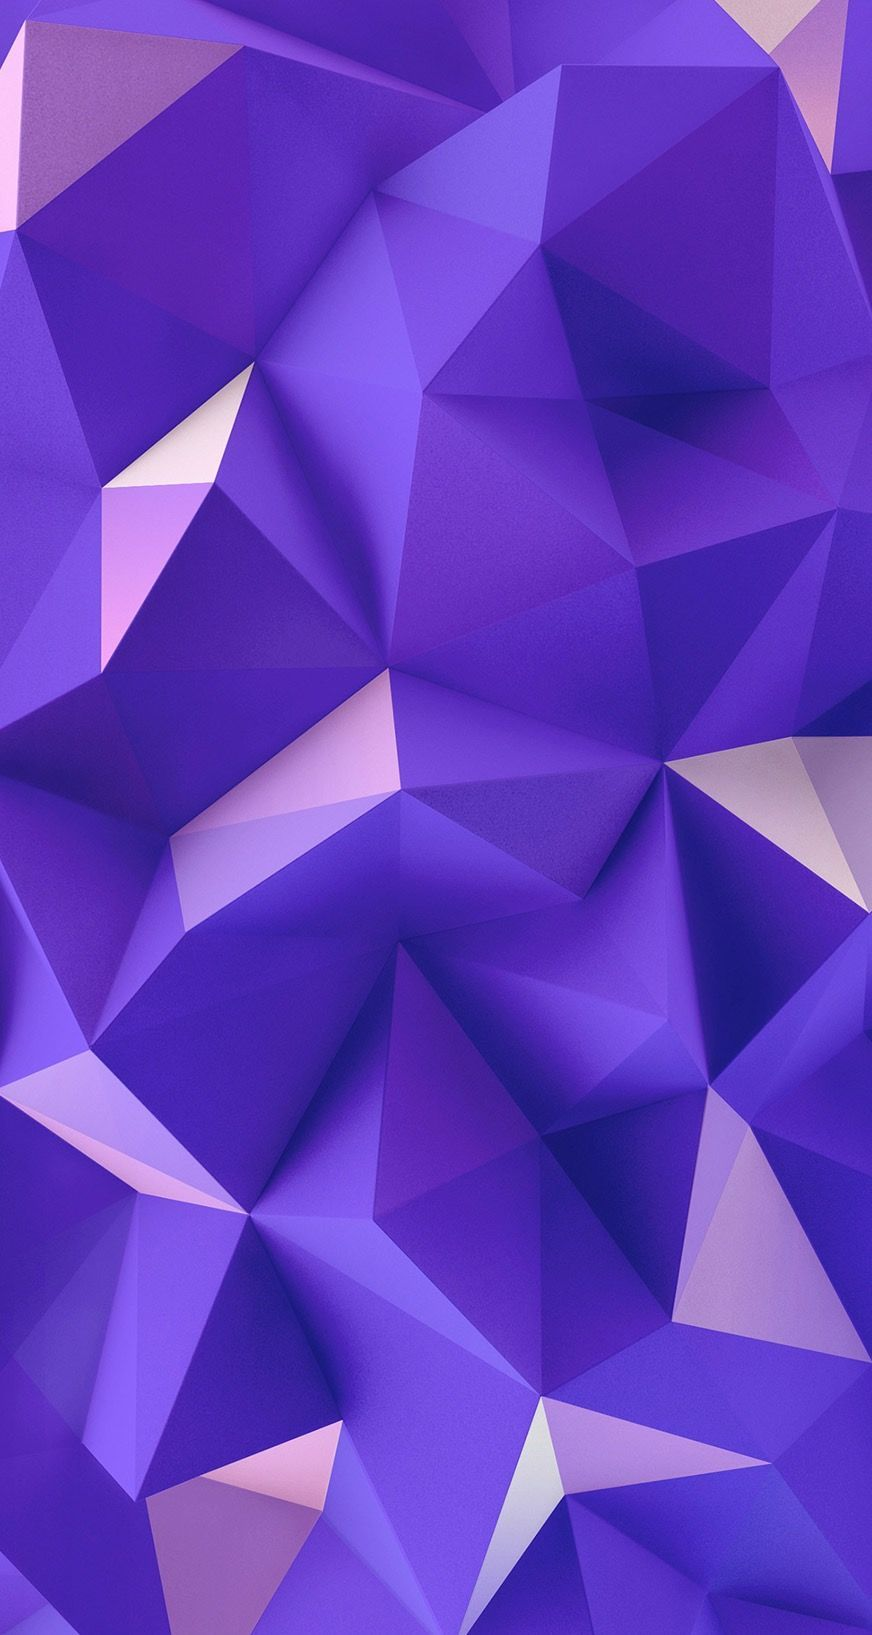 872x1635 Pin by Wallpapers.party on Abstract in 2019 | Iphone ...